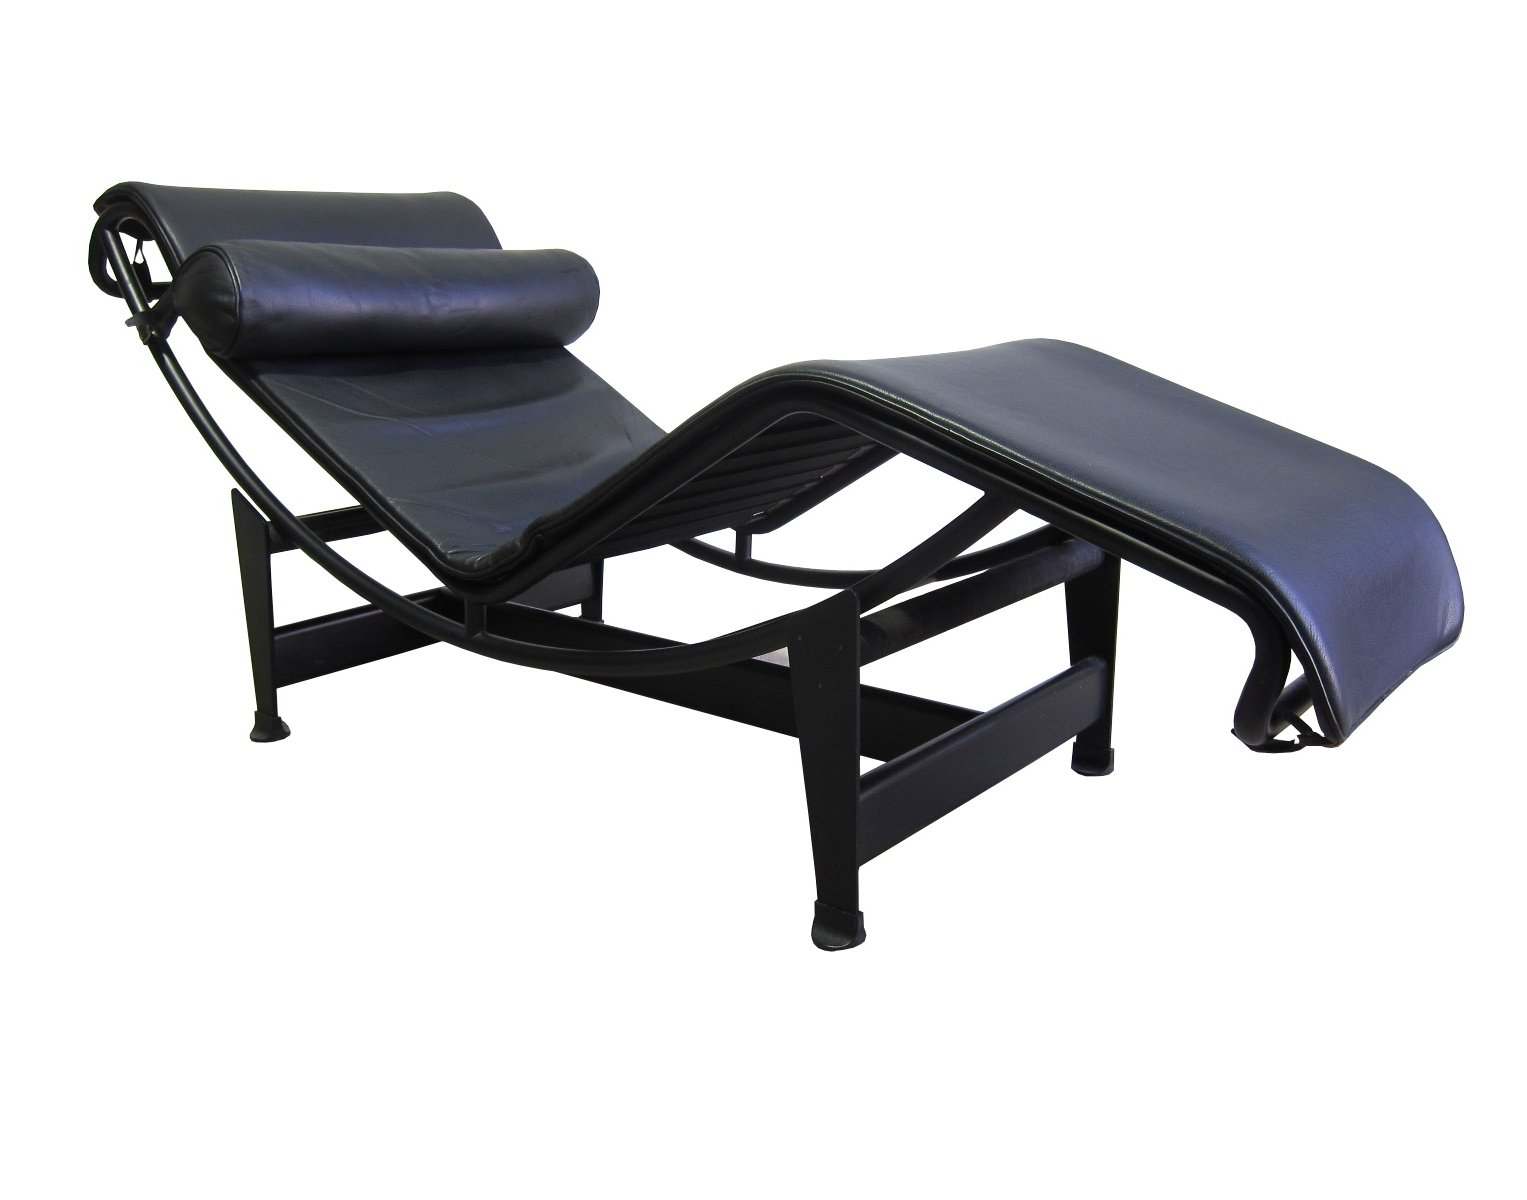 Vintage cassina lc4 39 chaise longue 39 black version 71827 for Chaise longue lc4